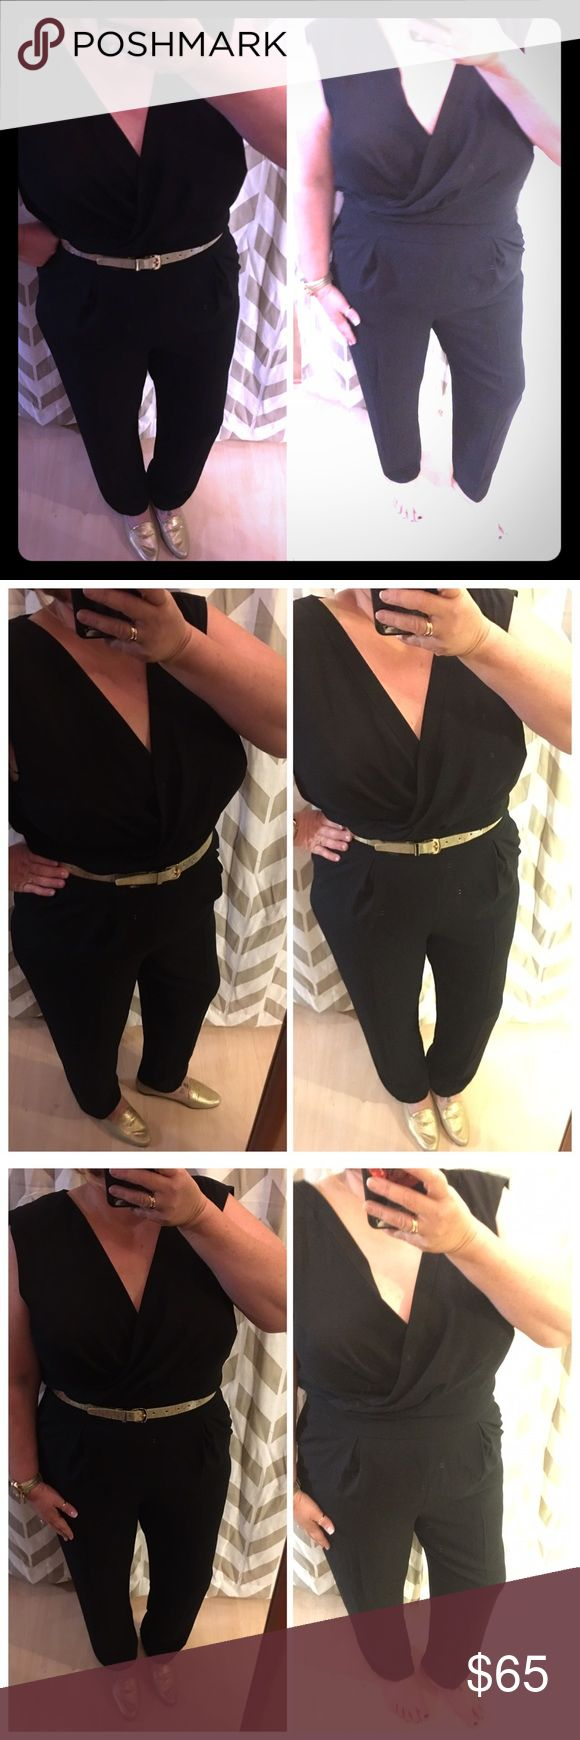 Just In Talbots One Piece Black Pants Jumpsuit This is a must have for the upcoming holiday season, it could be worn so many ways and how much easier can you get then once piece to put on.  I would love to see how you guys would style it.  New with tags never worn Talbots Pants Jumpsuits & Rompers